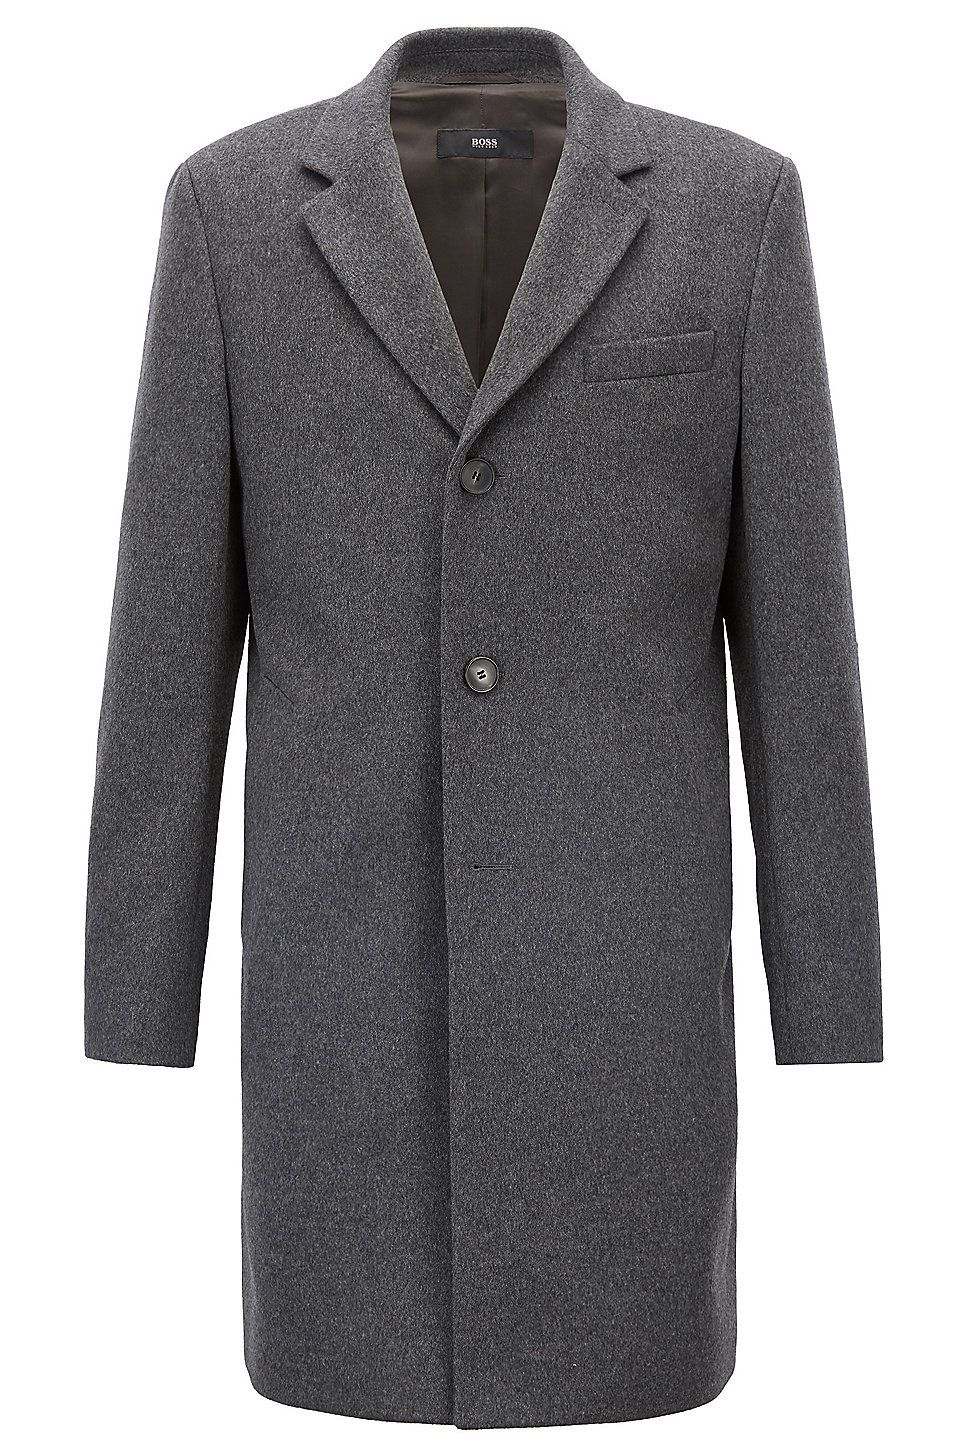 Hugo Boss Formal Coat In Wool And Cashmere With Notch Lapels Grey Formal Coats From Boss For Men In The Official Hugo Boss O Herren Abendmode Mantel Kaschmir